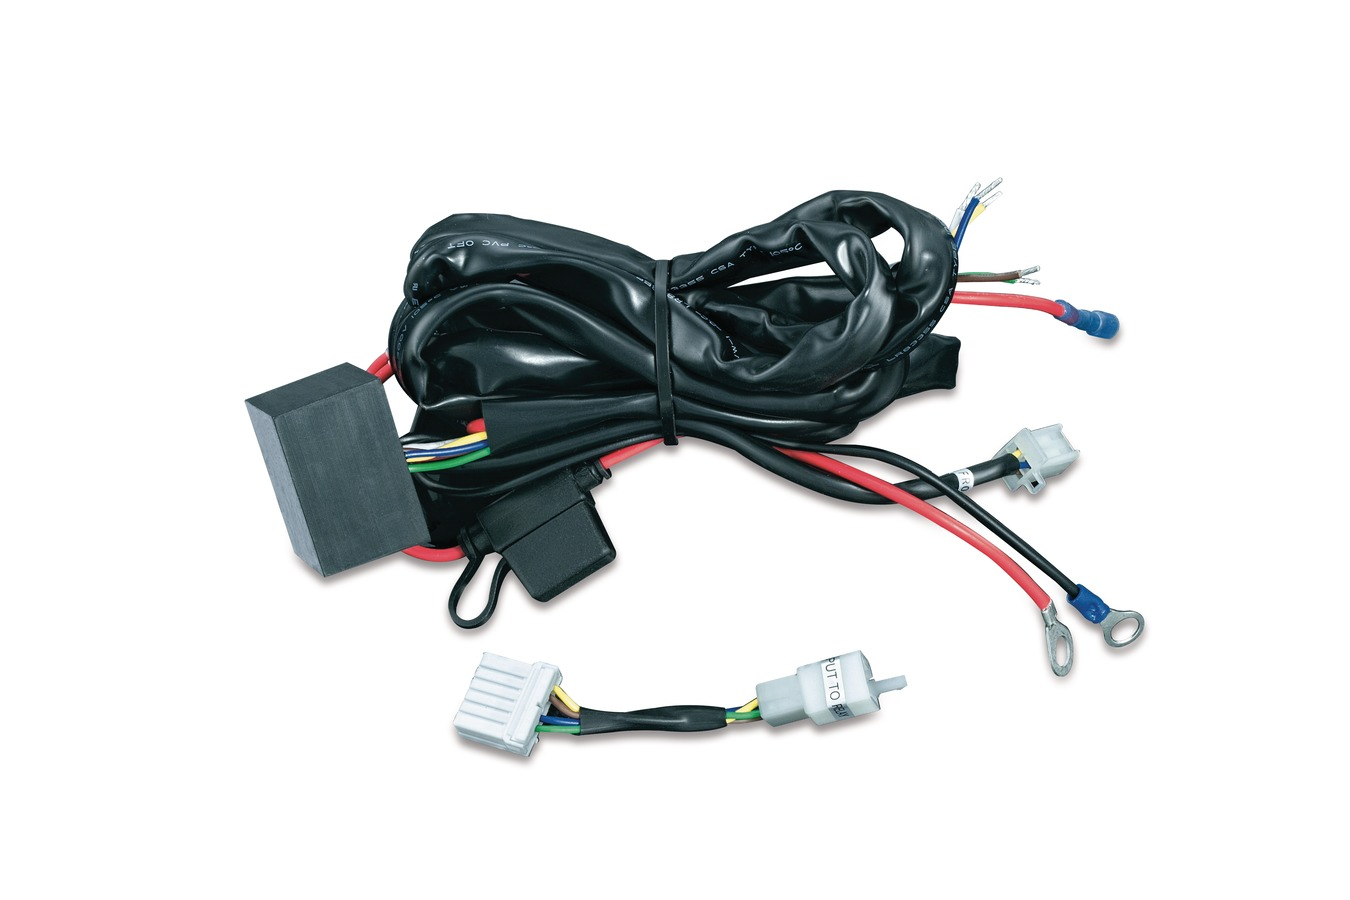 Gl1500 Trailer Wiring Harness : Trailer wiring relay harness diagram images